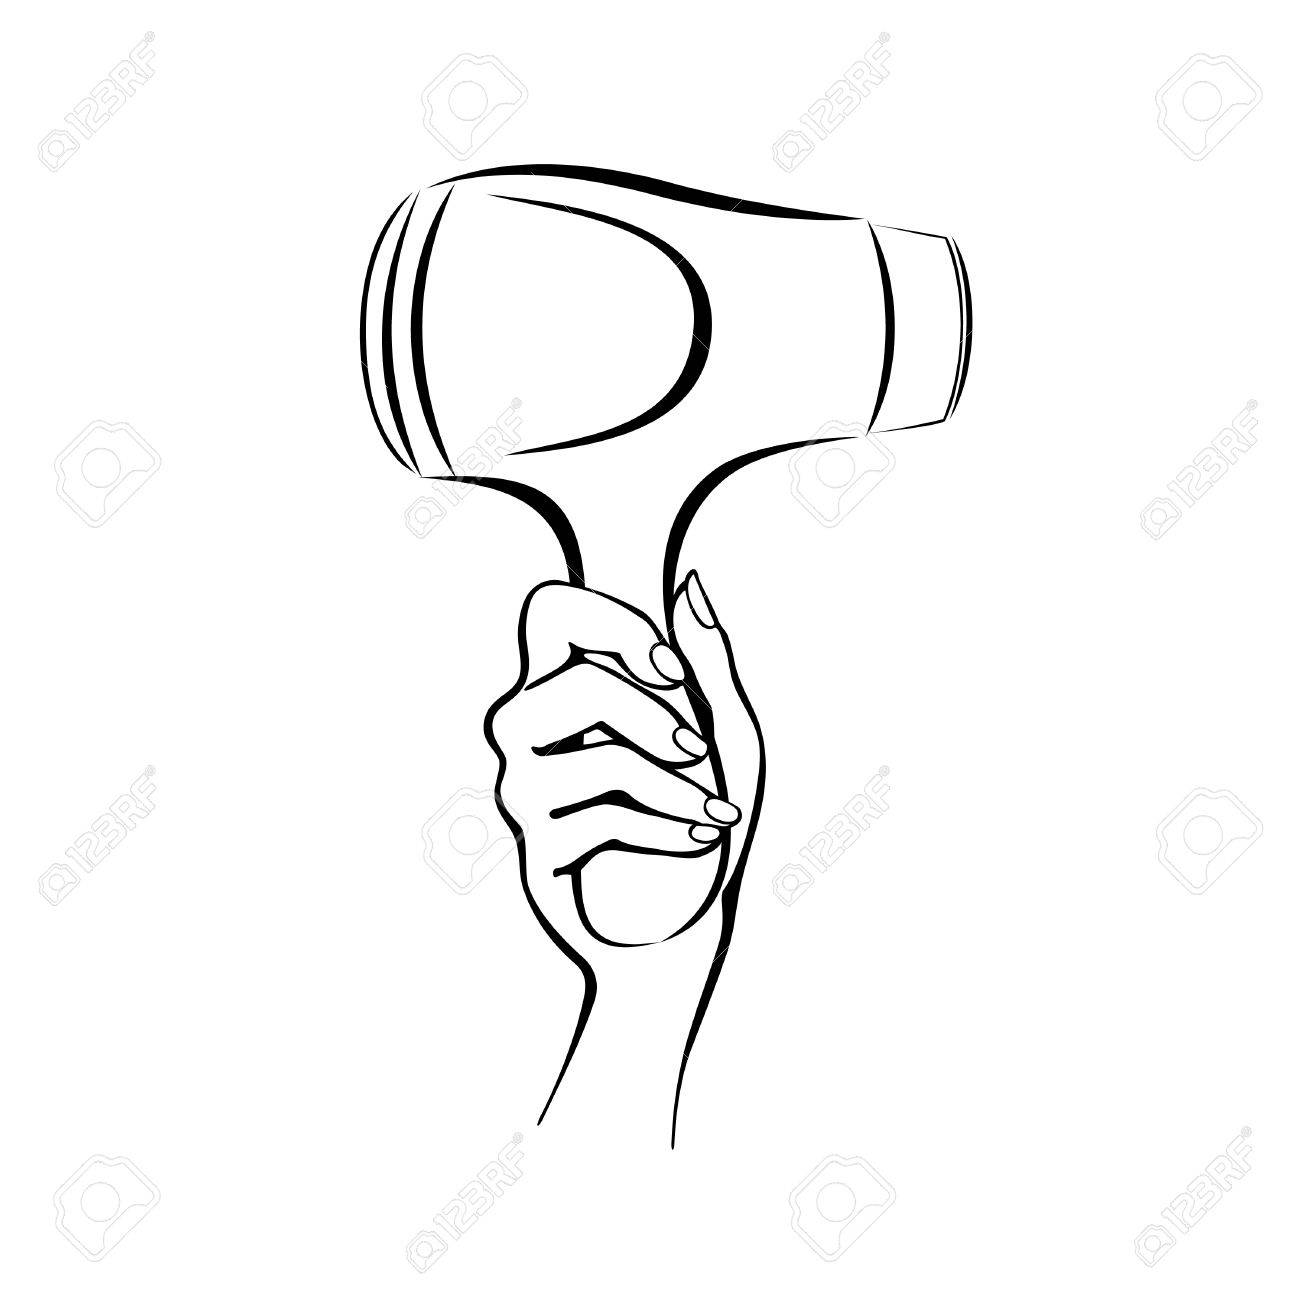 Vector Picture Of A Hand Holding A Hair Dryer Royalty Free Cliparts Vectors And Stock Illustration Image 28818126